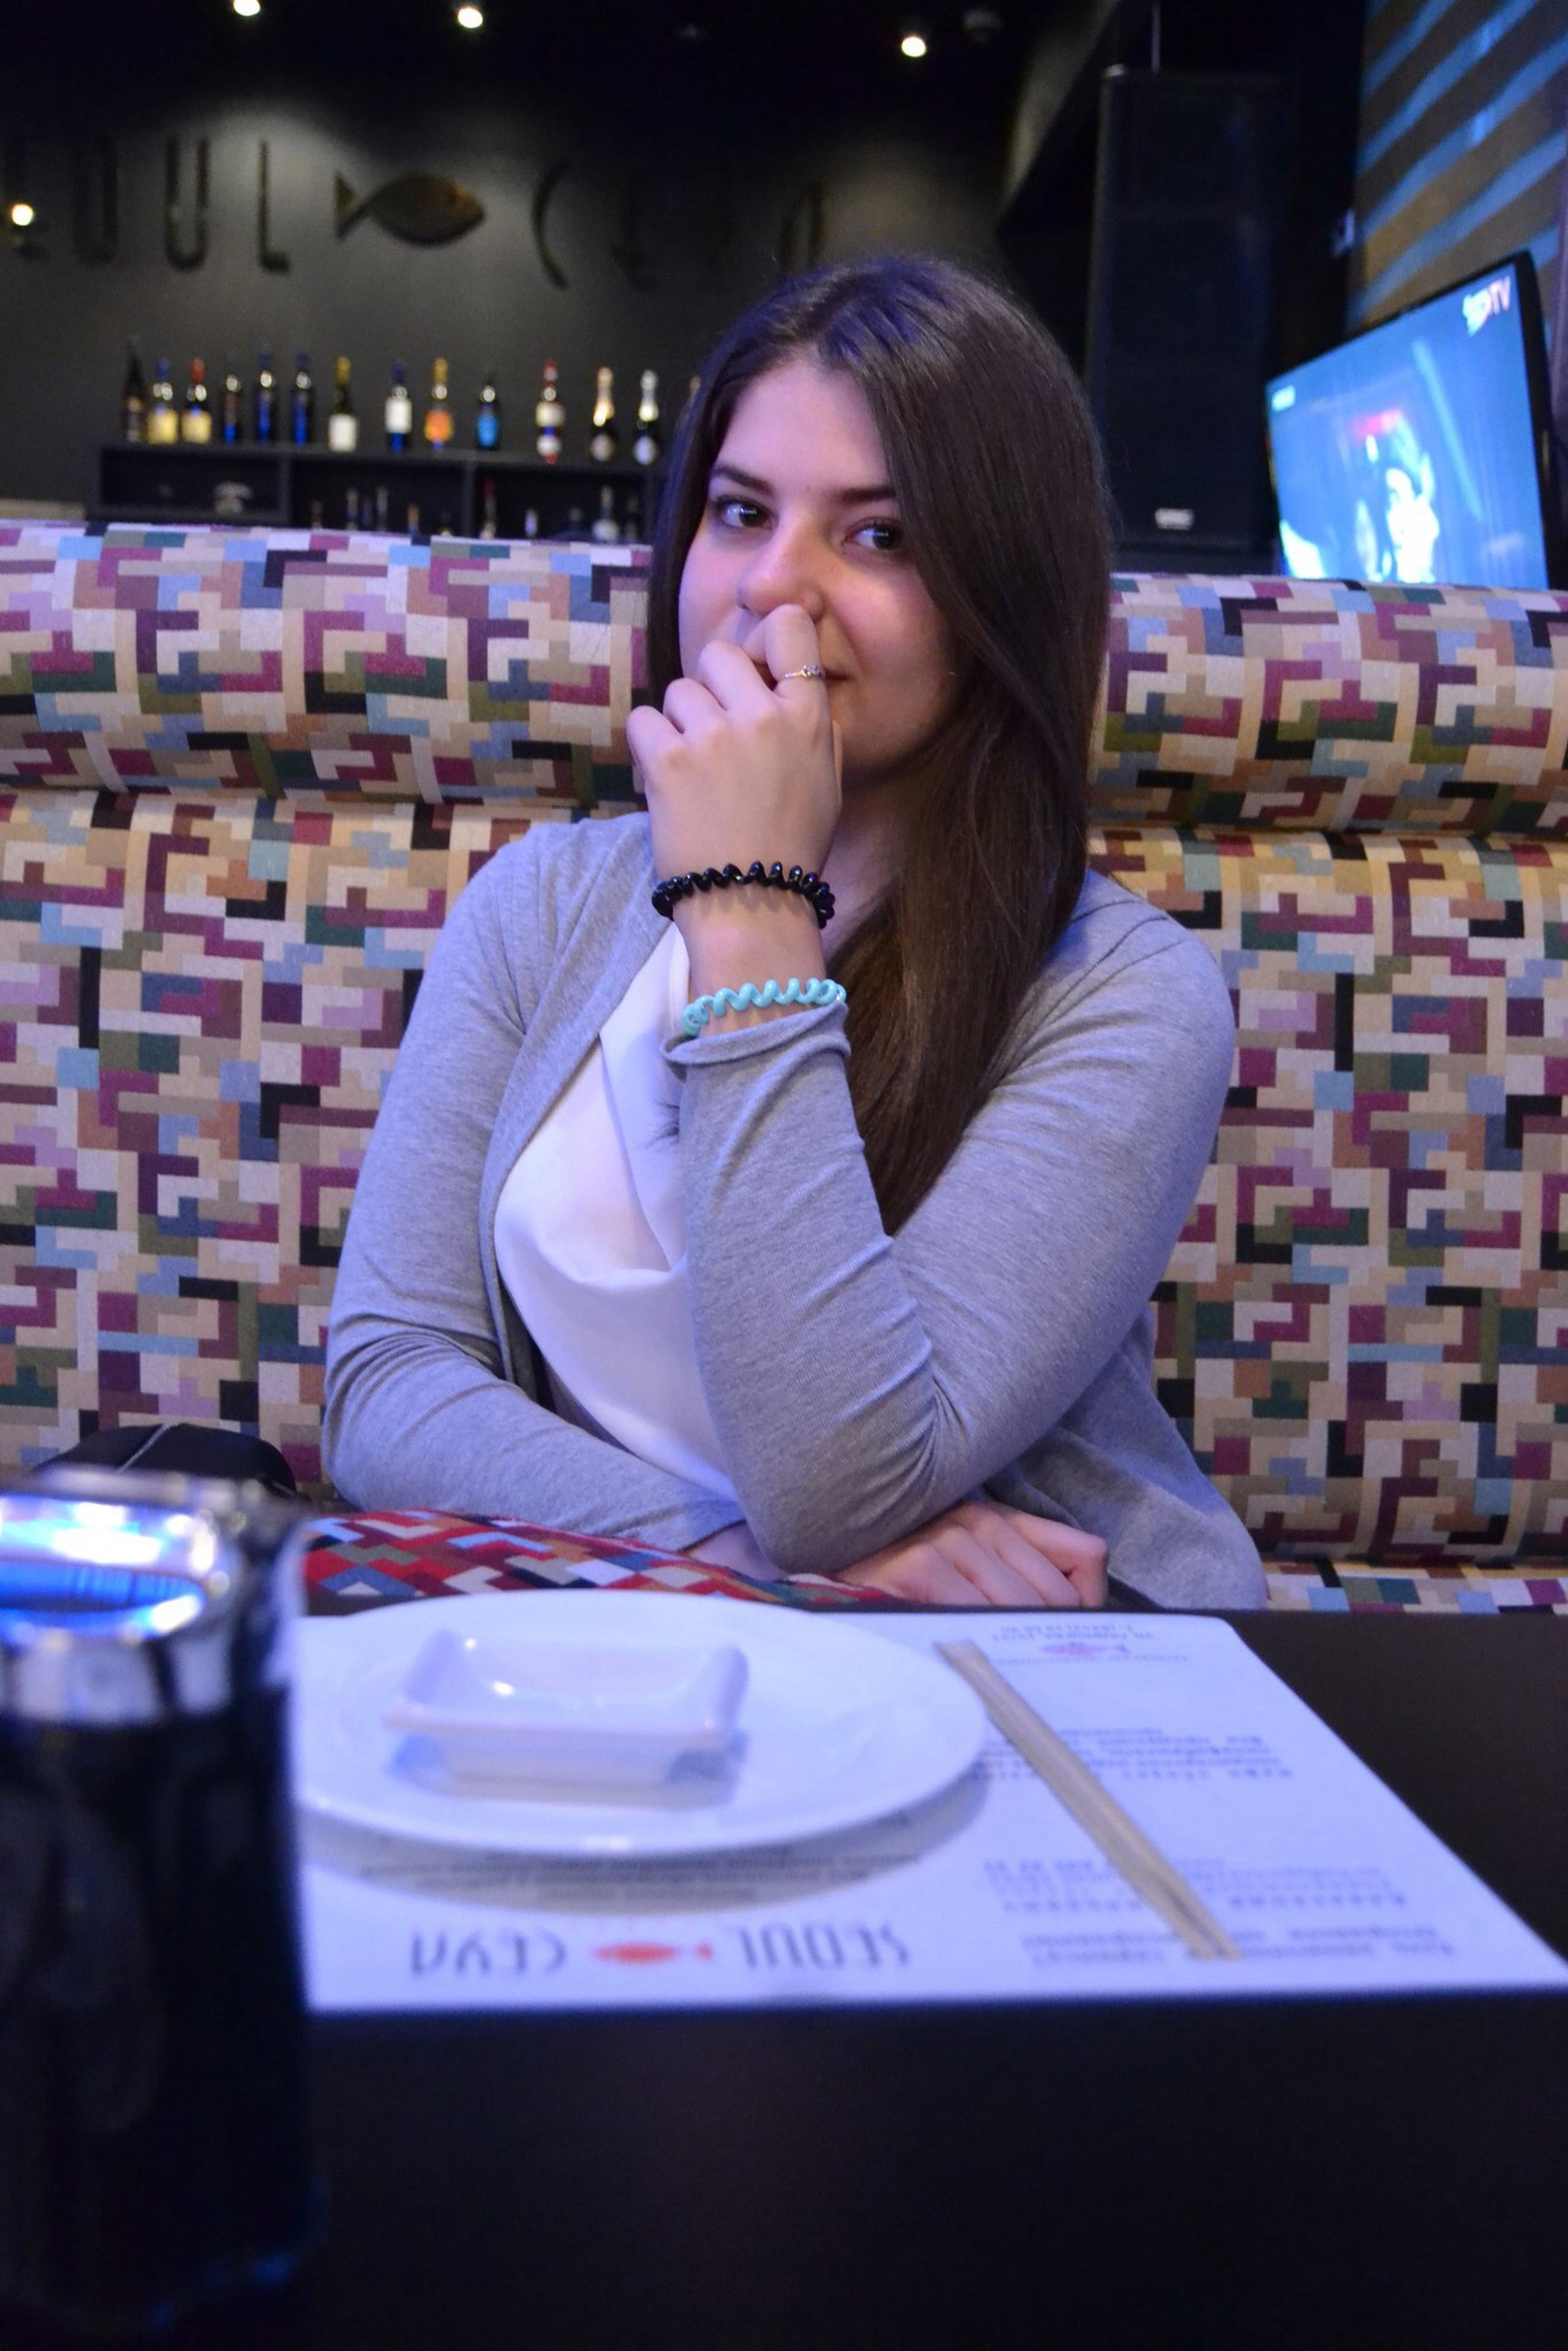 food and drink, indoors, young adult, lifestyles, drink, person, casual clothing, leisure activity, refreshment, front view, table, sitting, portrait, restaurant, looking at camera, waist up, holding, freshness